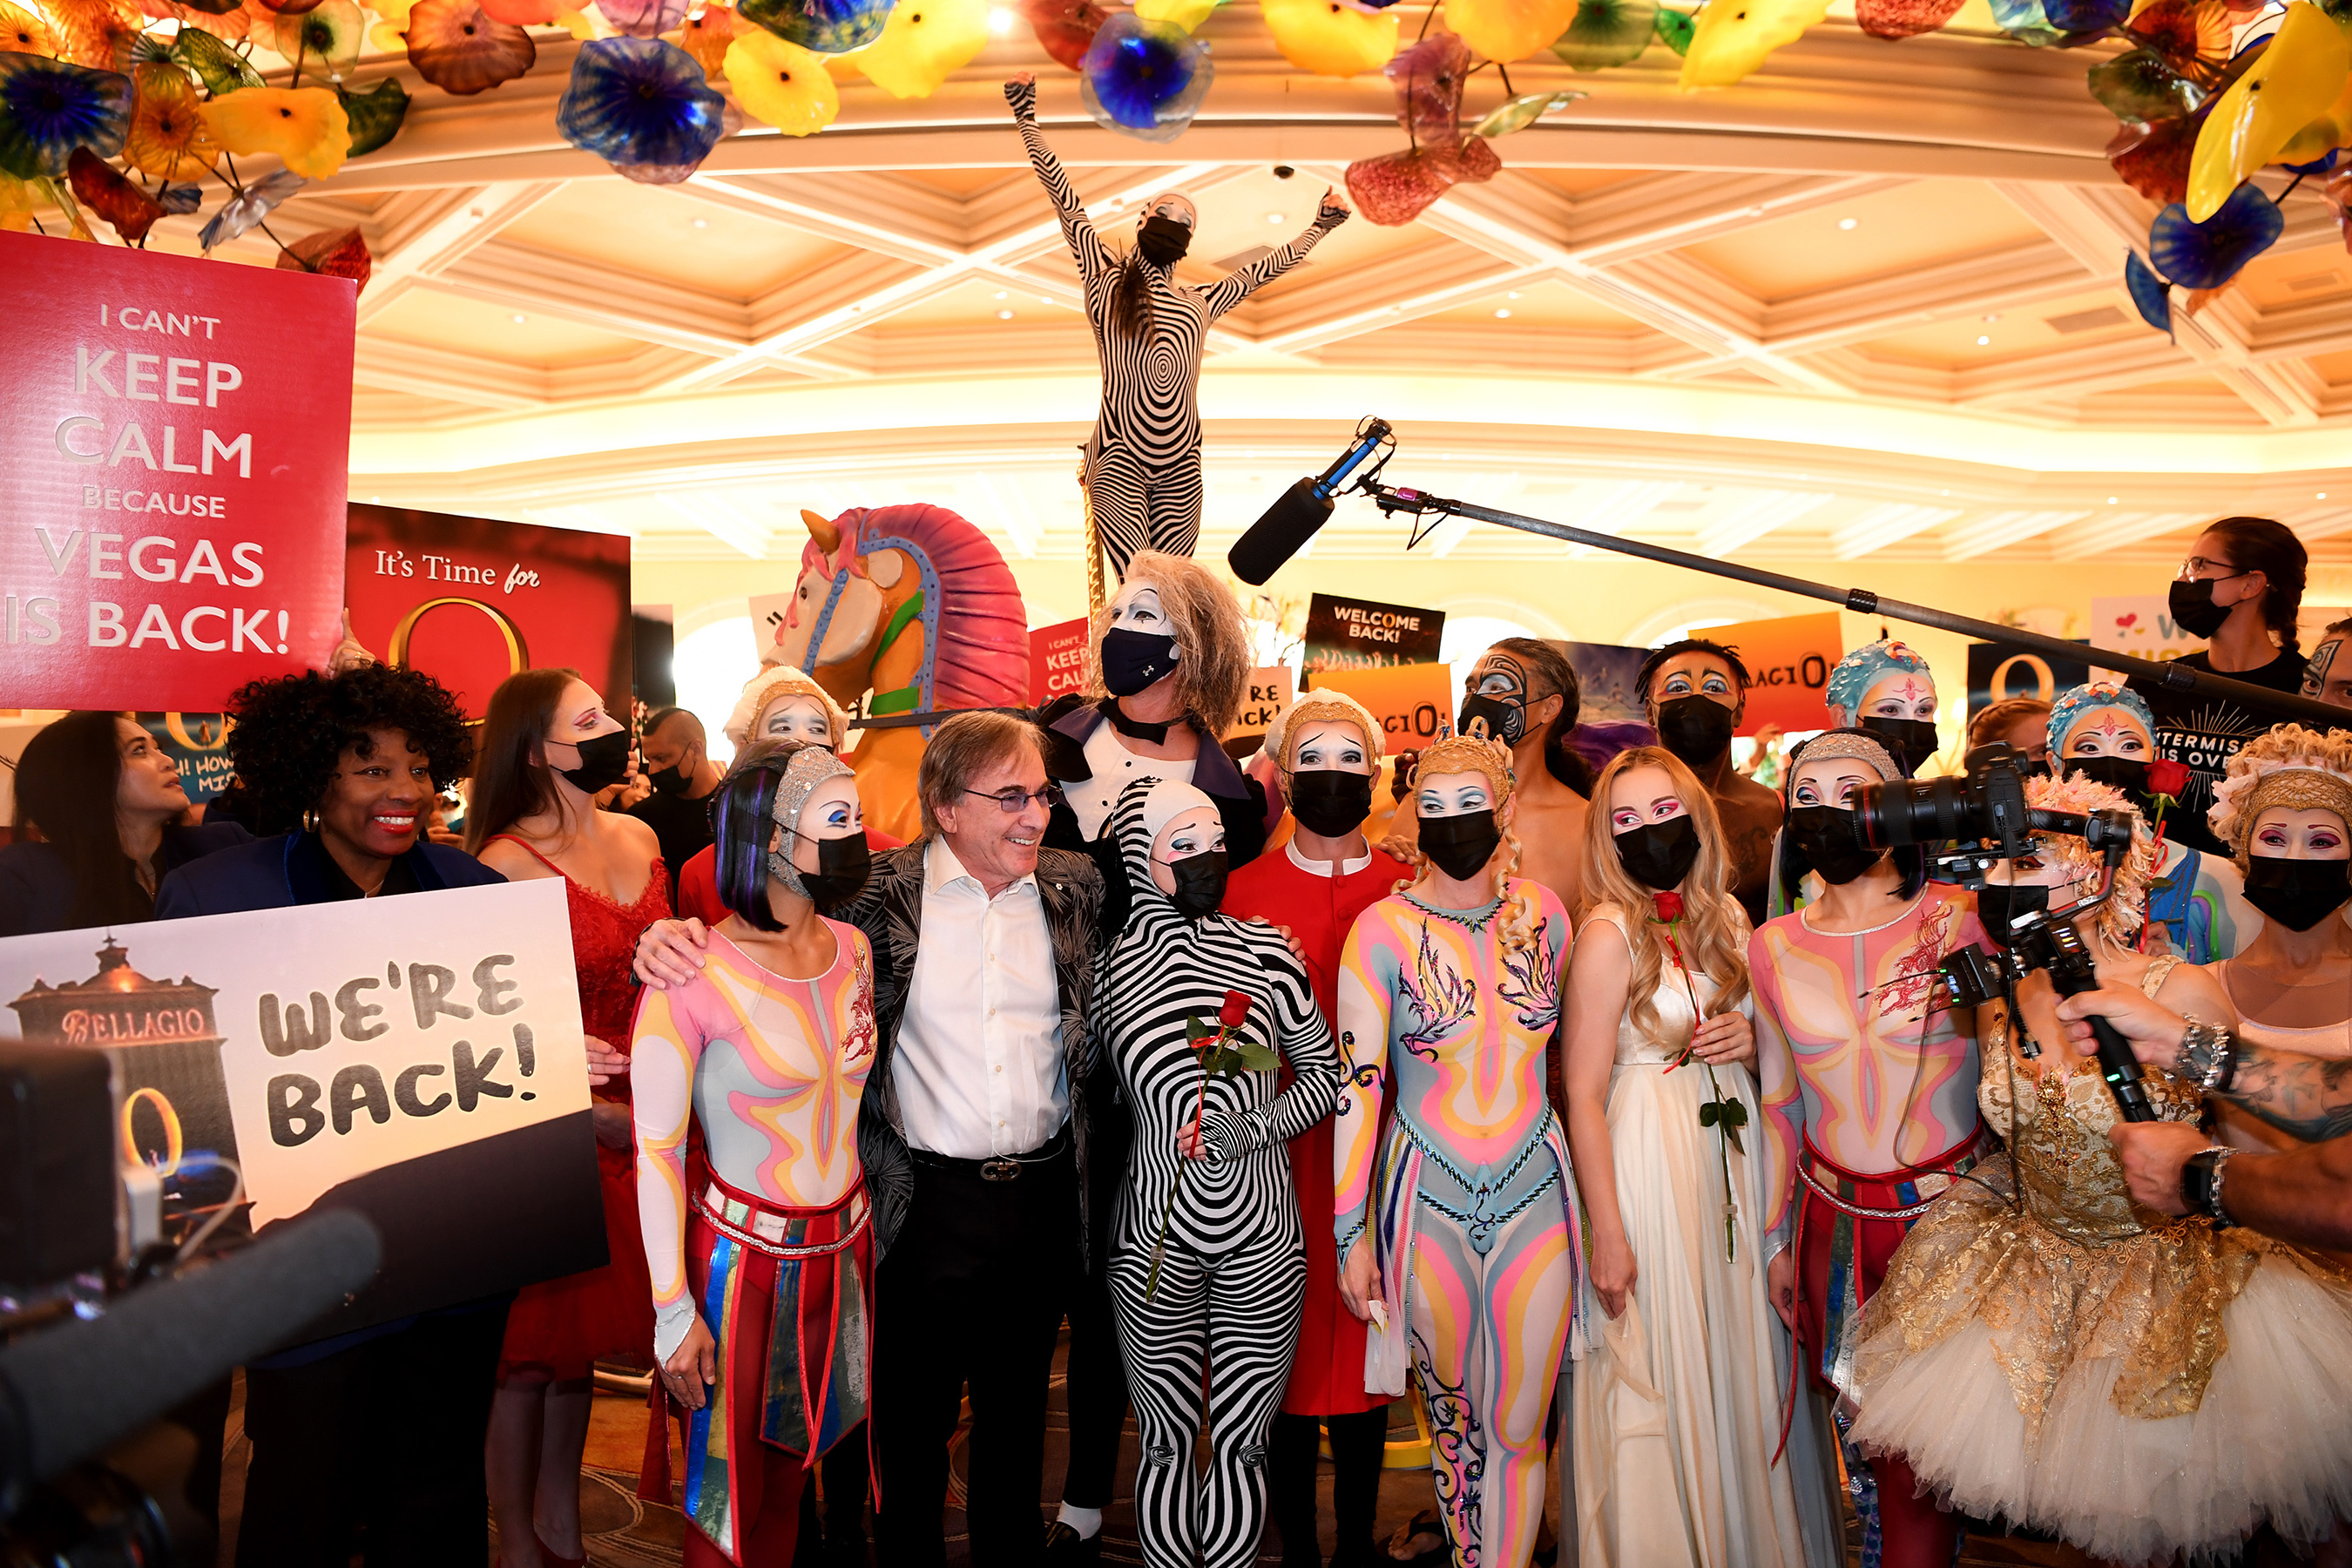 """""""O"""" by Cirque du Soleil cast and crew members delight guests at Bellagio as they parade through the resort on reopening night in Las Vegas, July 1, 2021"""